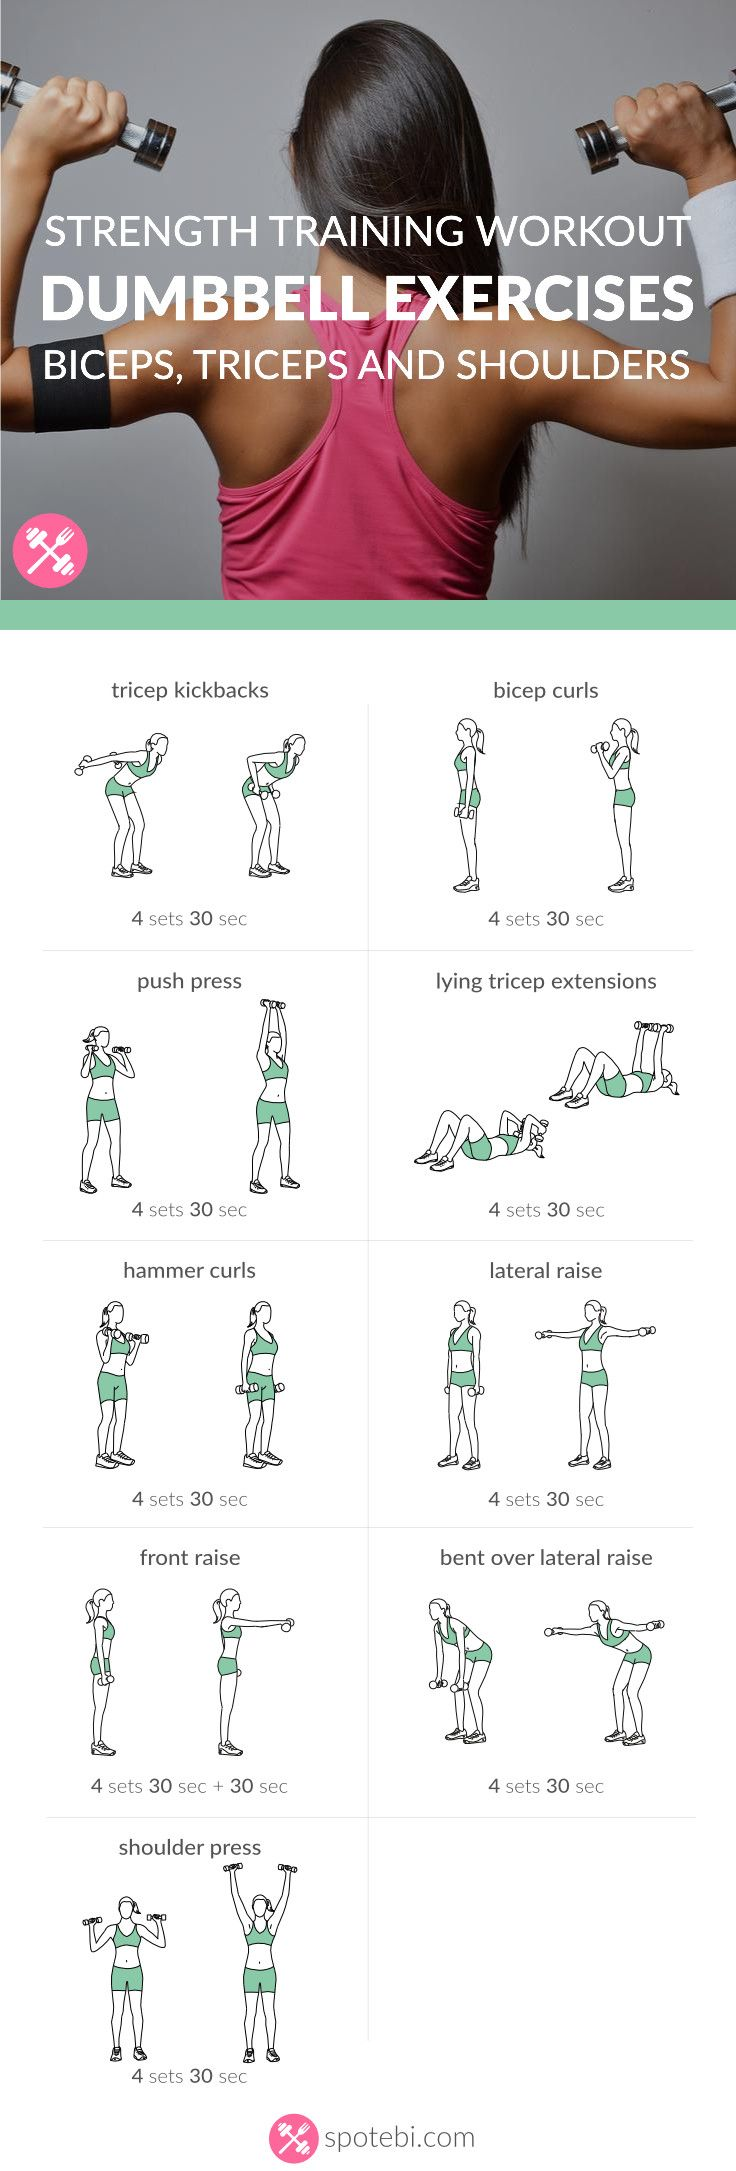 Build bigger biceps with this one trick Get rid of arm fat and tone sleek muscles with the help of these dumbbell exercises. Sculpt, tone and firm your biceps, triceps and shoulders in no time! www.spotebi.com/...